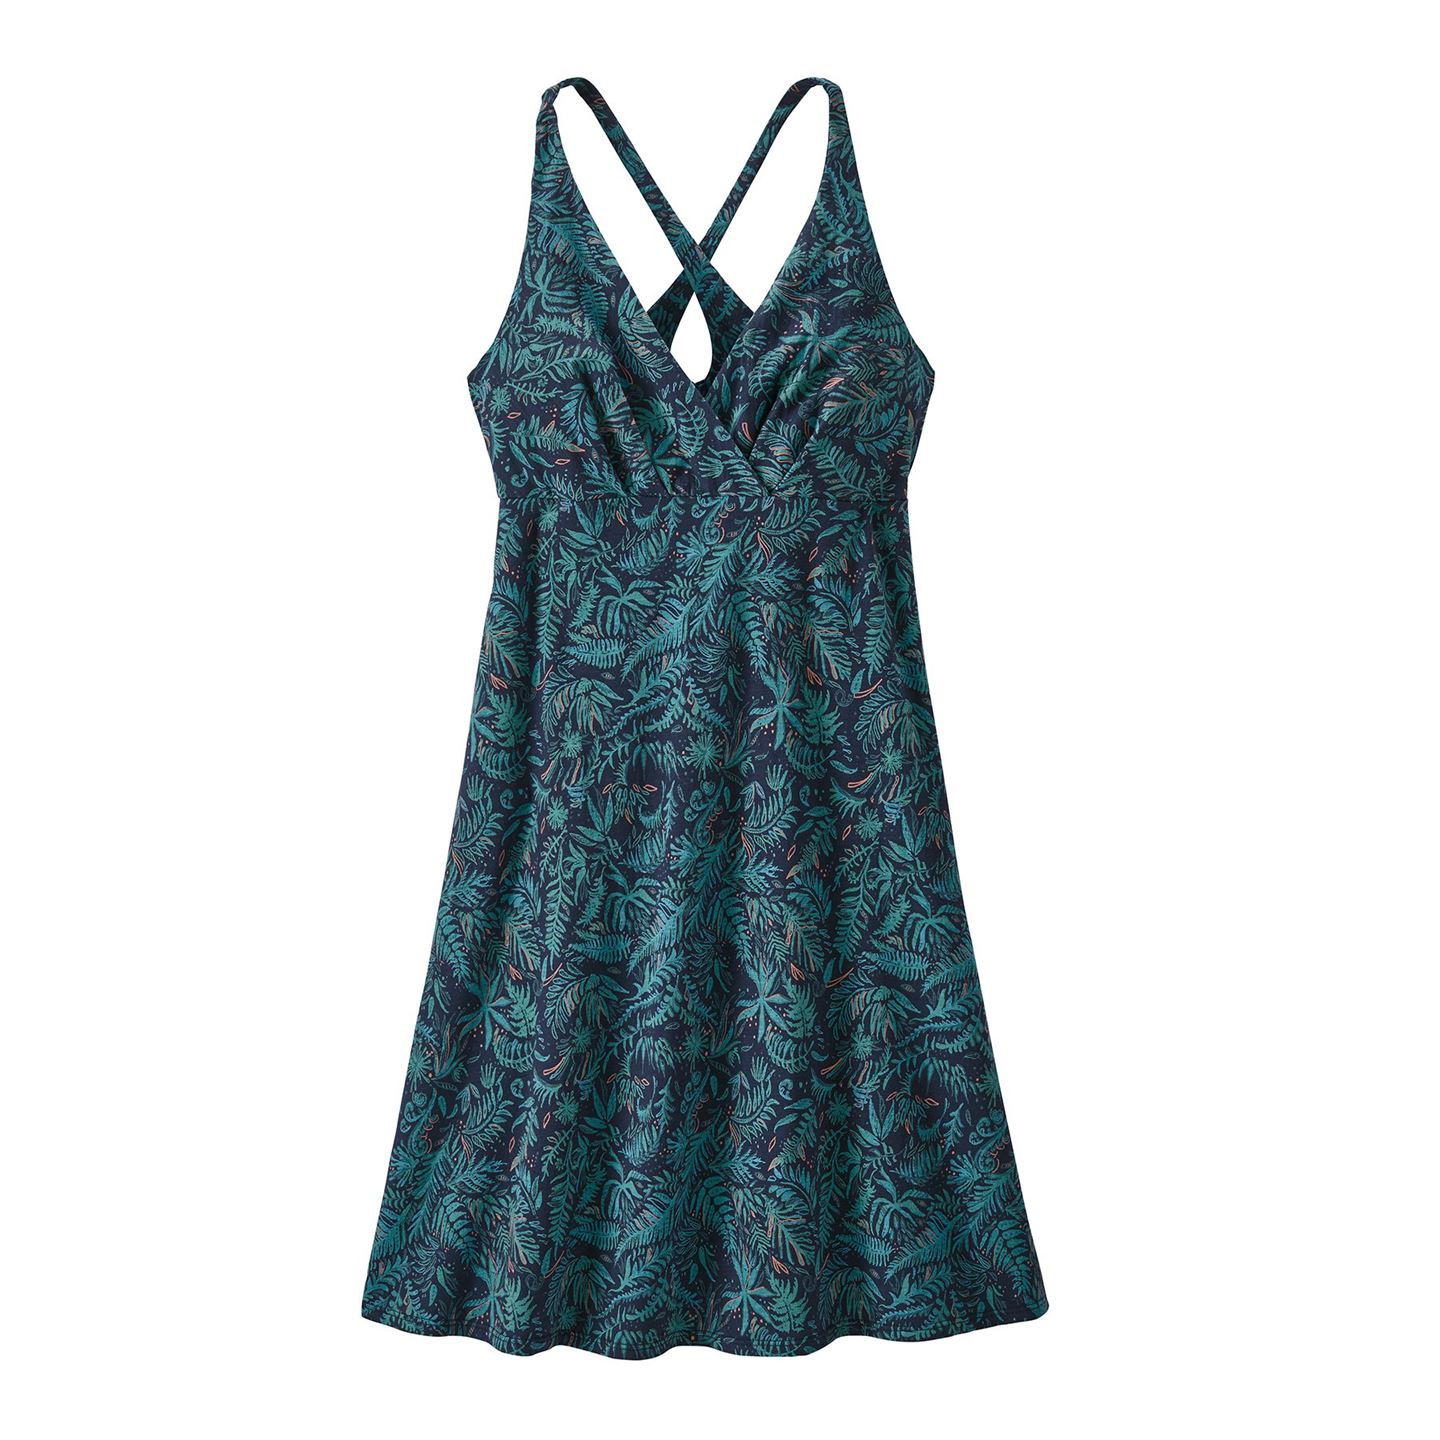 Amber Dawn Dress - Women's